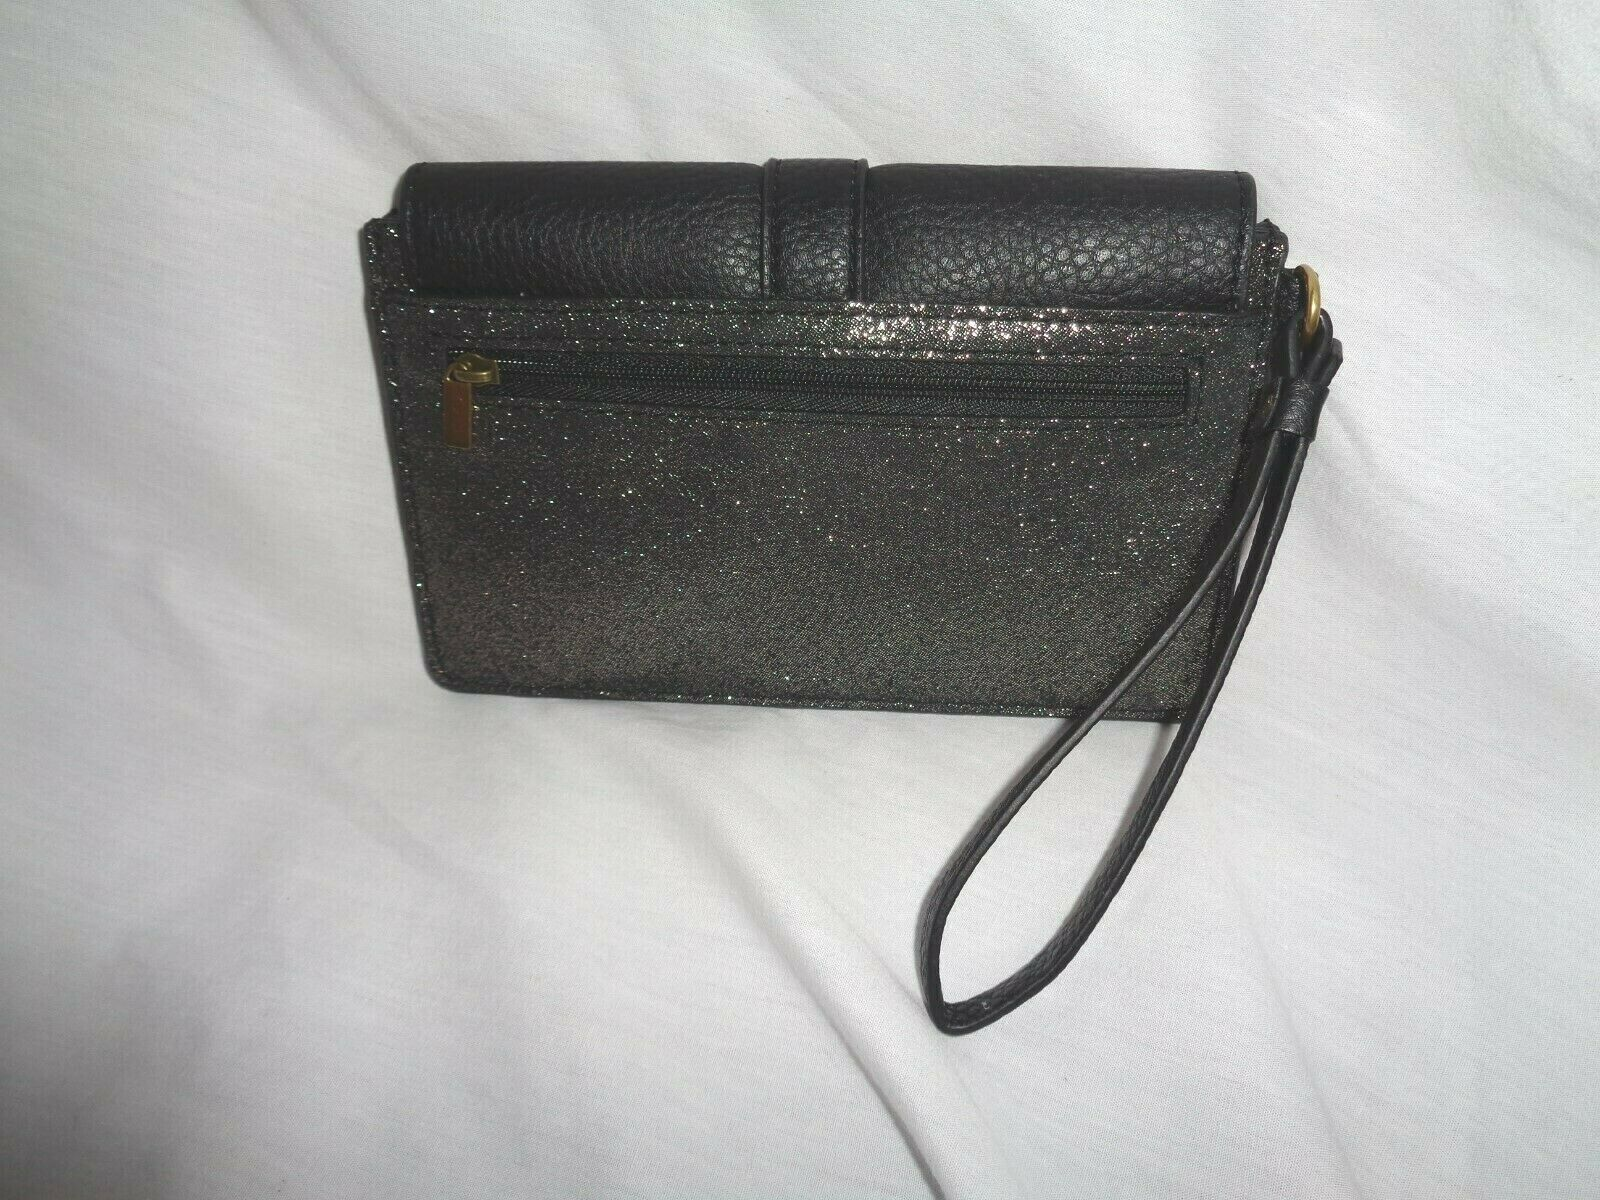 FOSSIL SOFIA PHONE CARD CASE WALLET WRISTLET CLUTCH PEWTER LEATHER SWL3045044